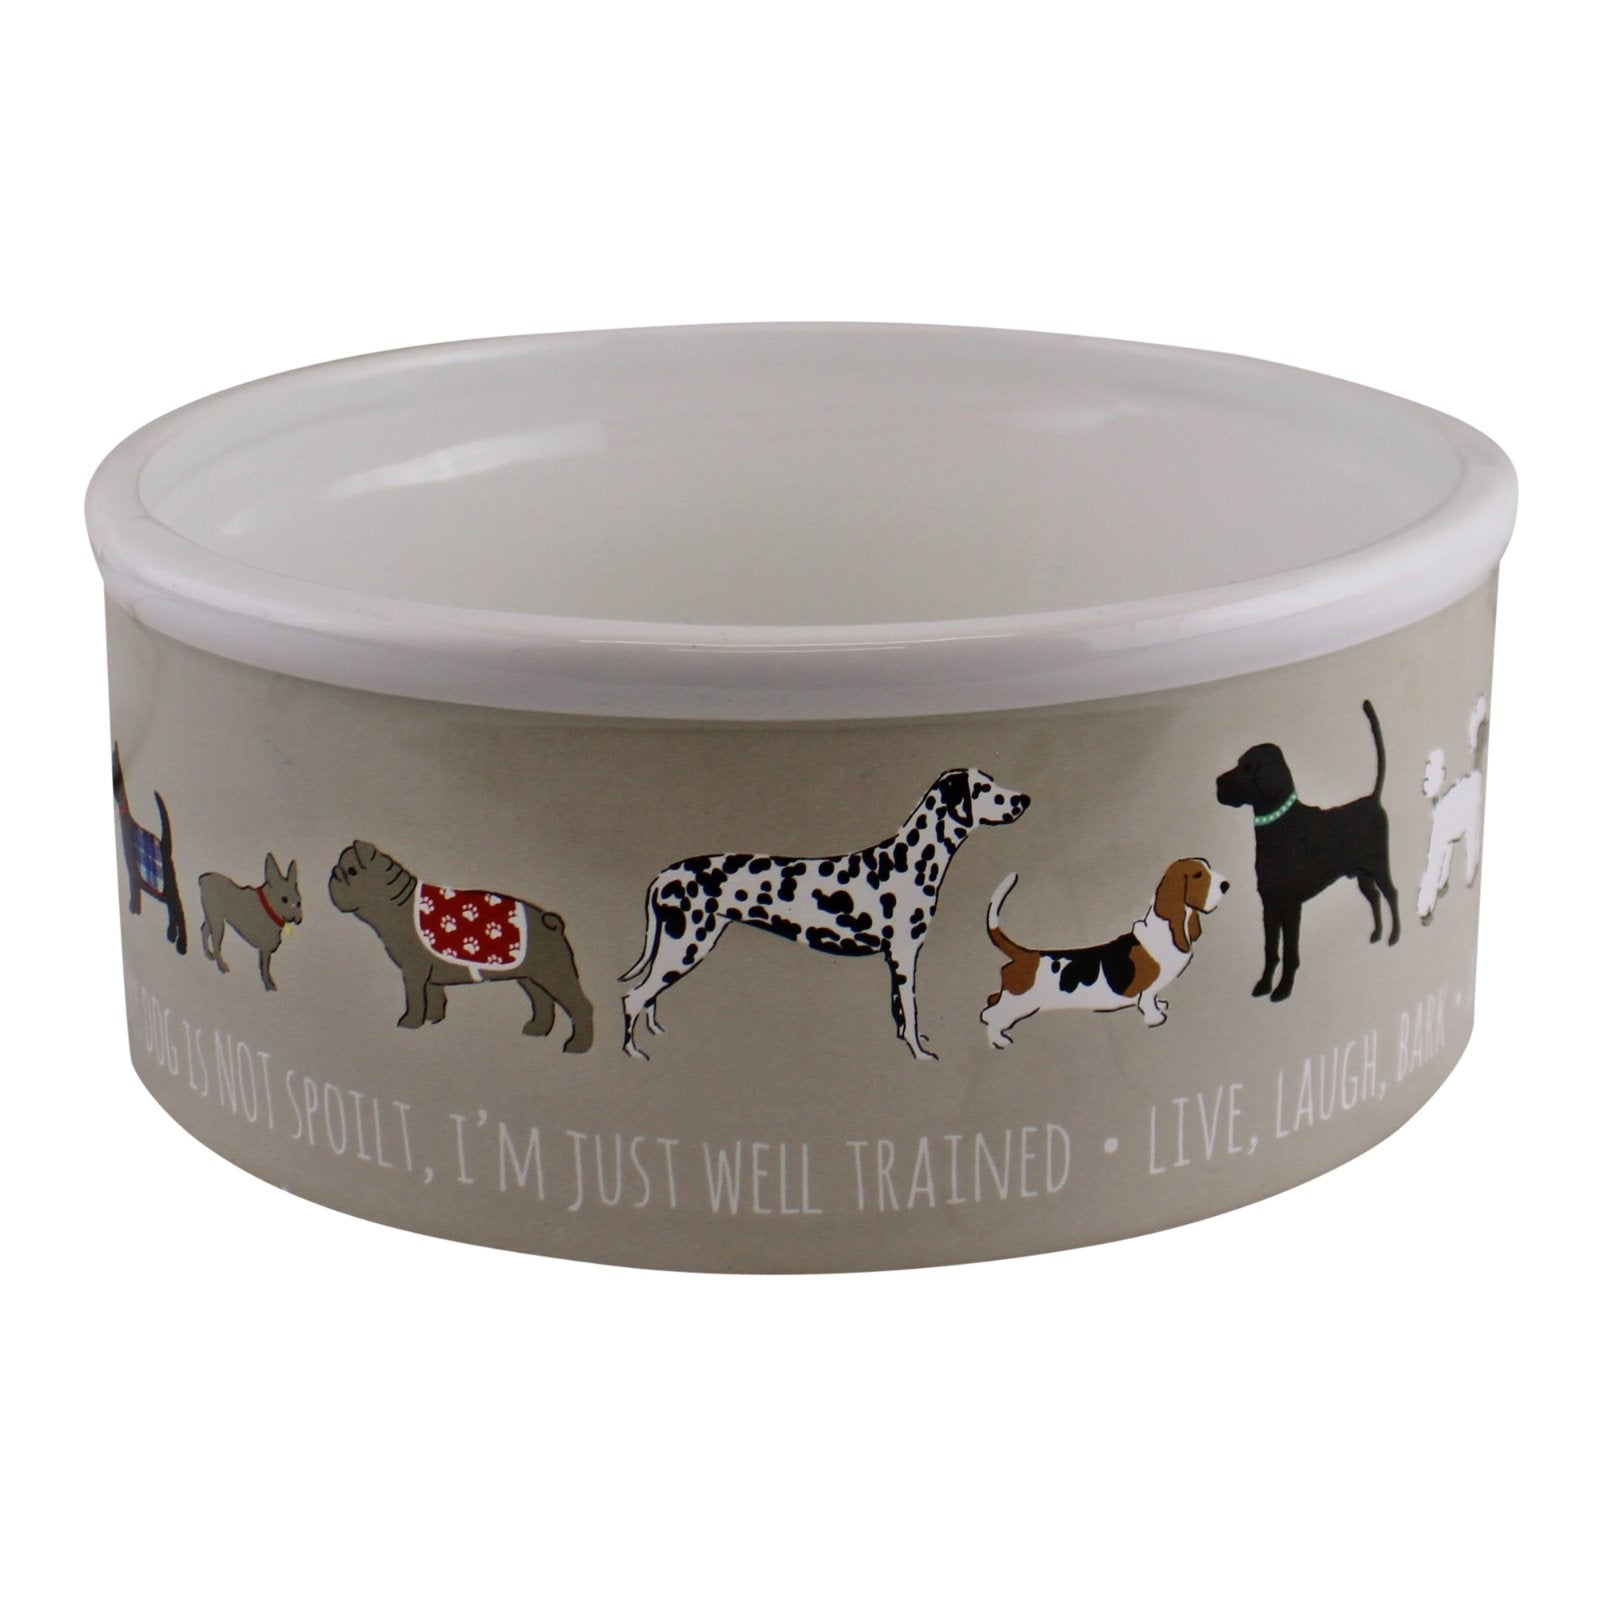 Large Ceramic Dog Bowl, 20cm, Pet Bowls, Feeders & Waterers by Low Cost Gifts